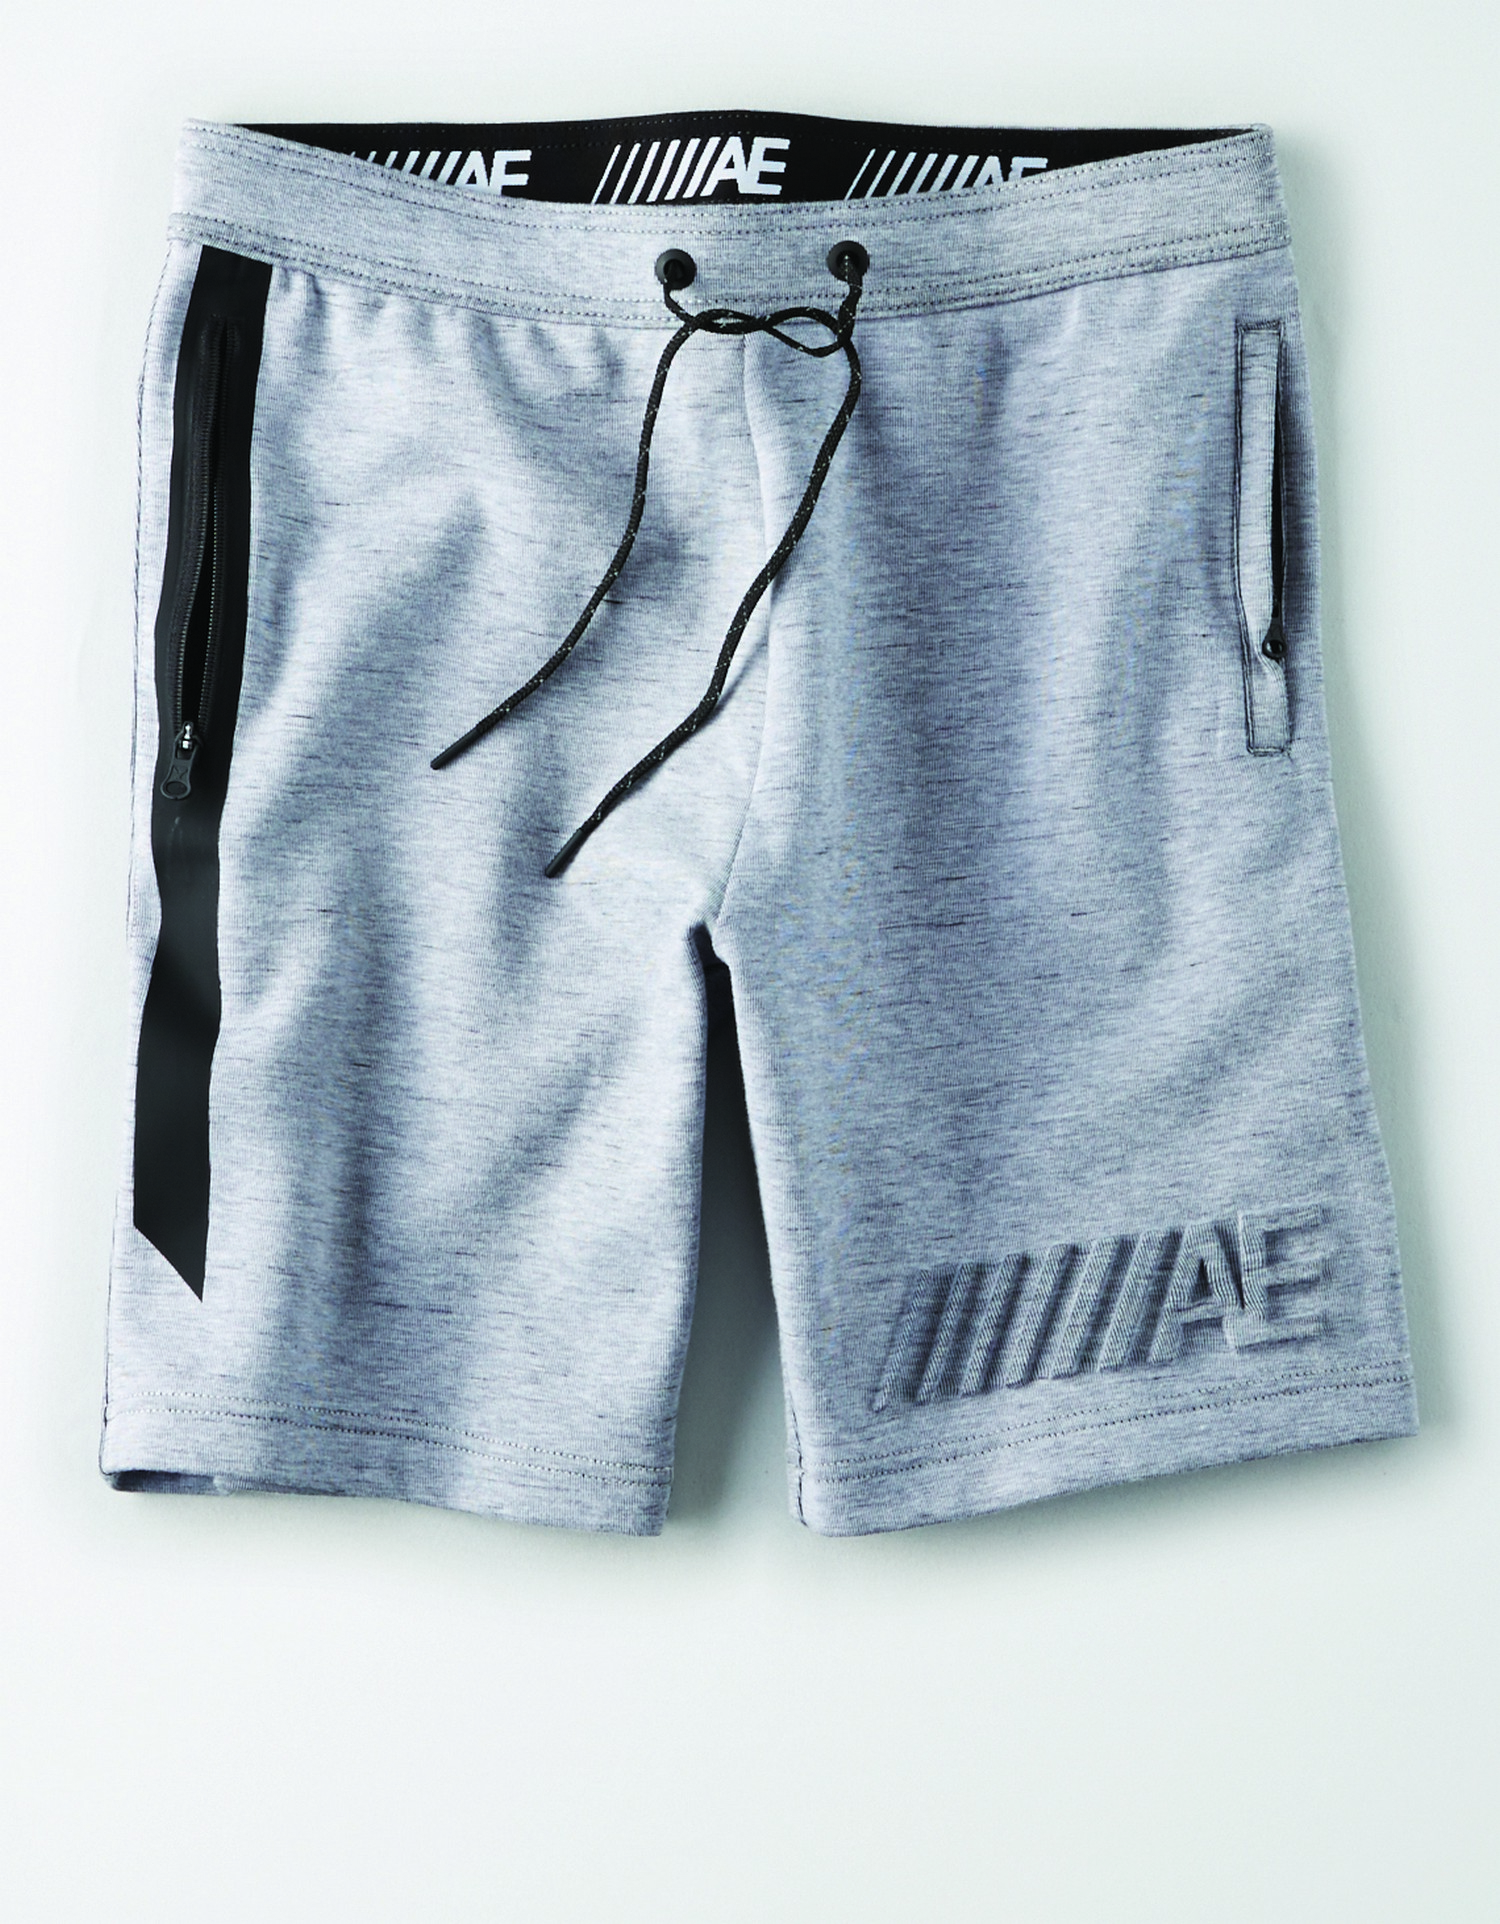 Ae INTL- M- Apparel-ACTIVE SHORT-light grey sweatshort with black bonding on pockets and raised ///AE graphic on the left leg BG *Tracked